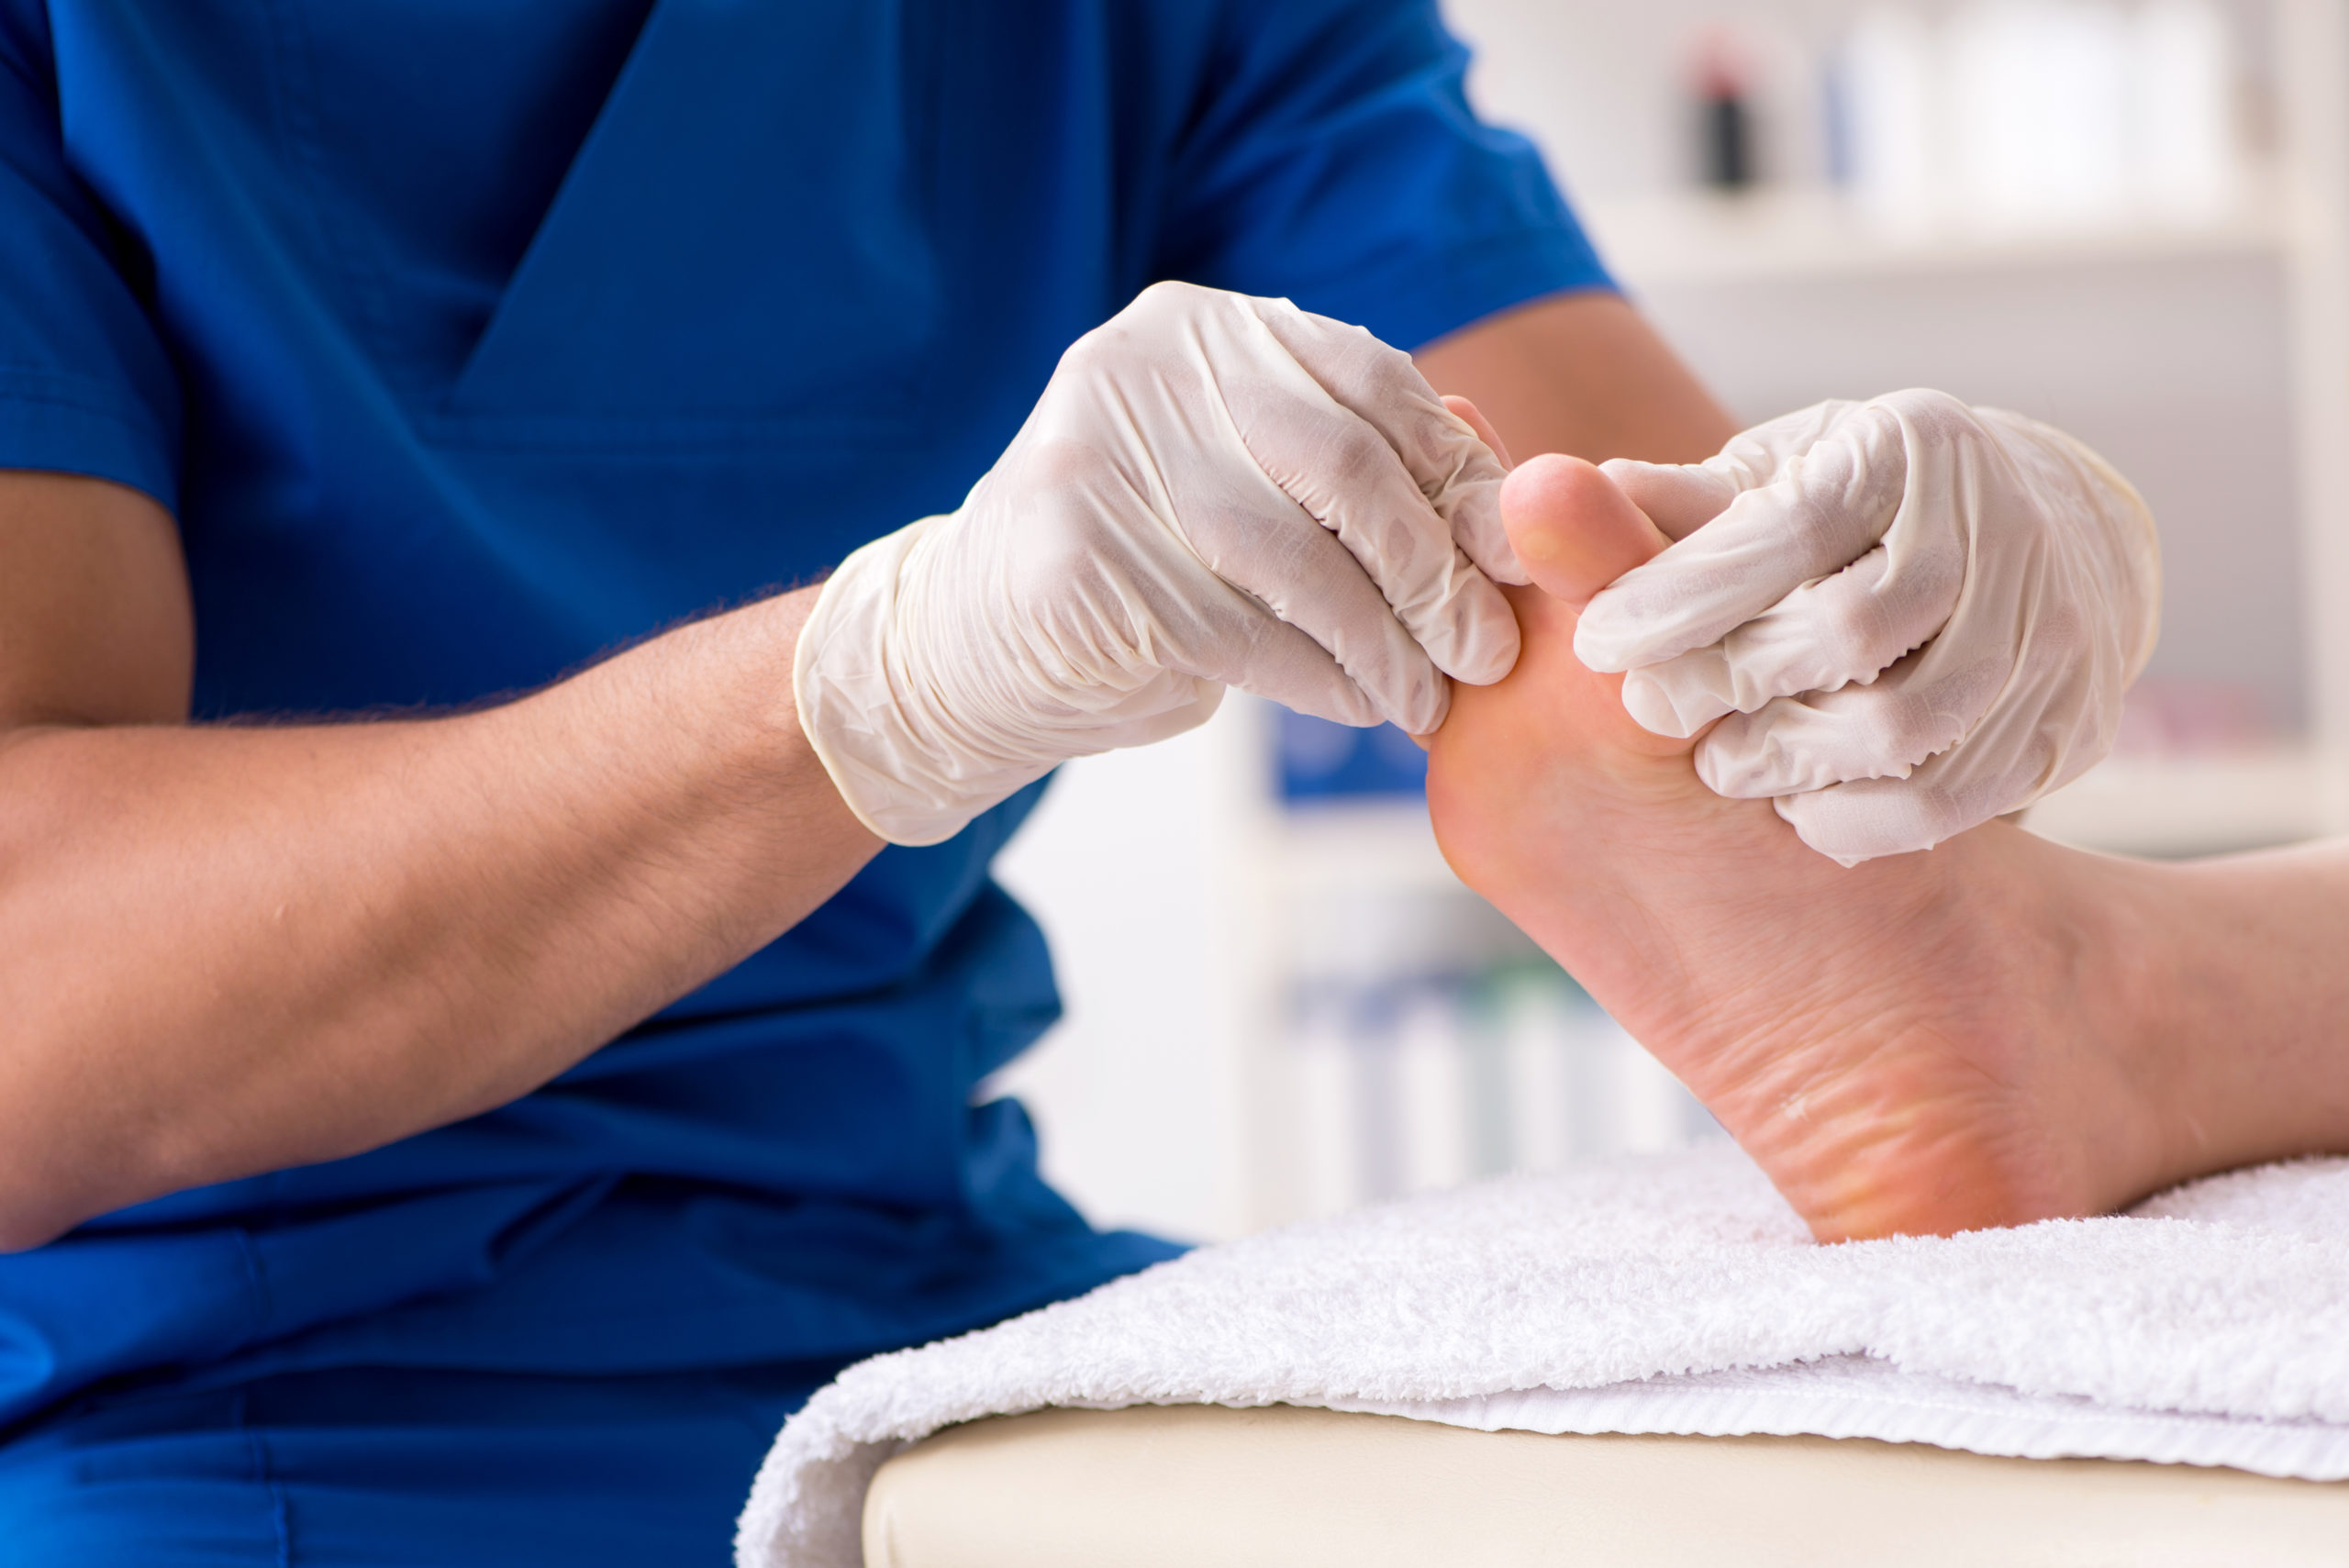 We are dedicated to providing high-quality foot and ankle treatment.